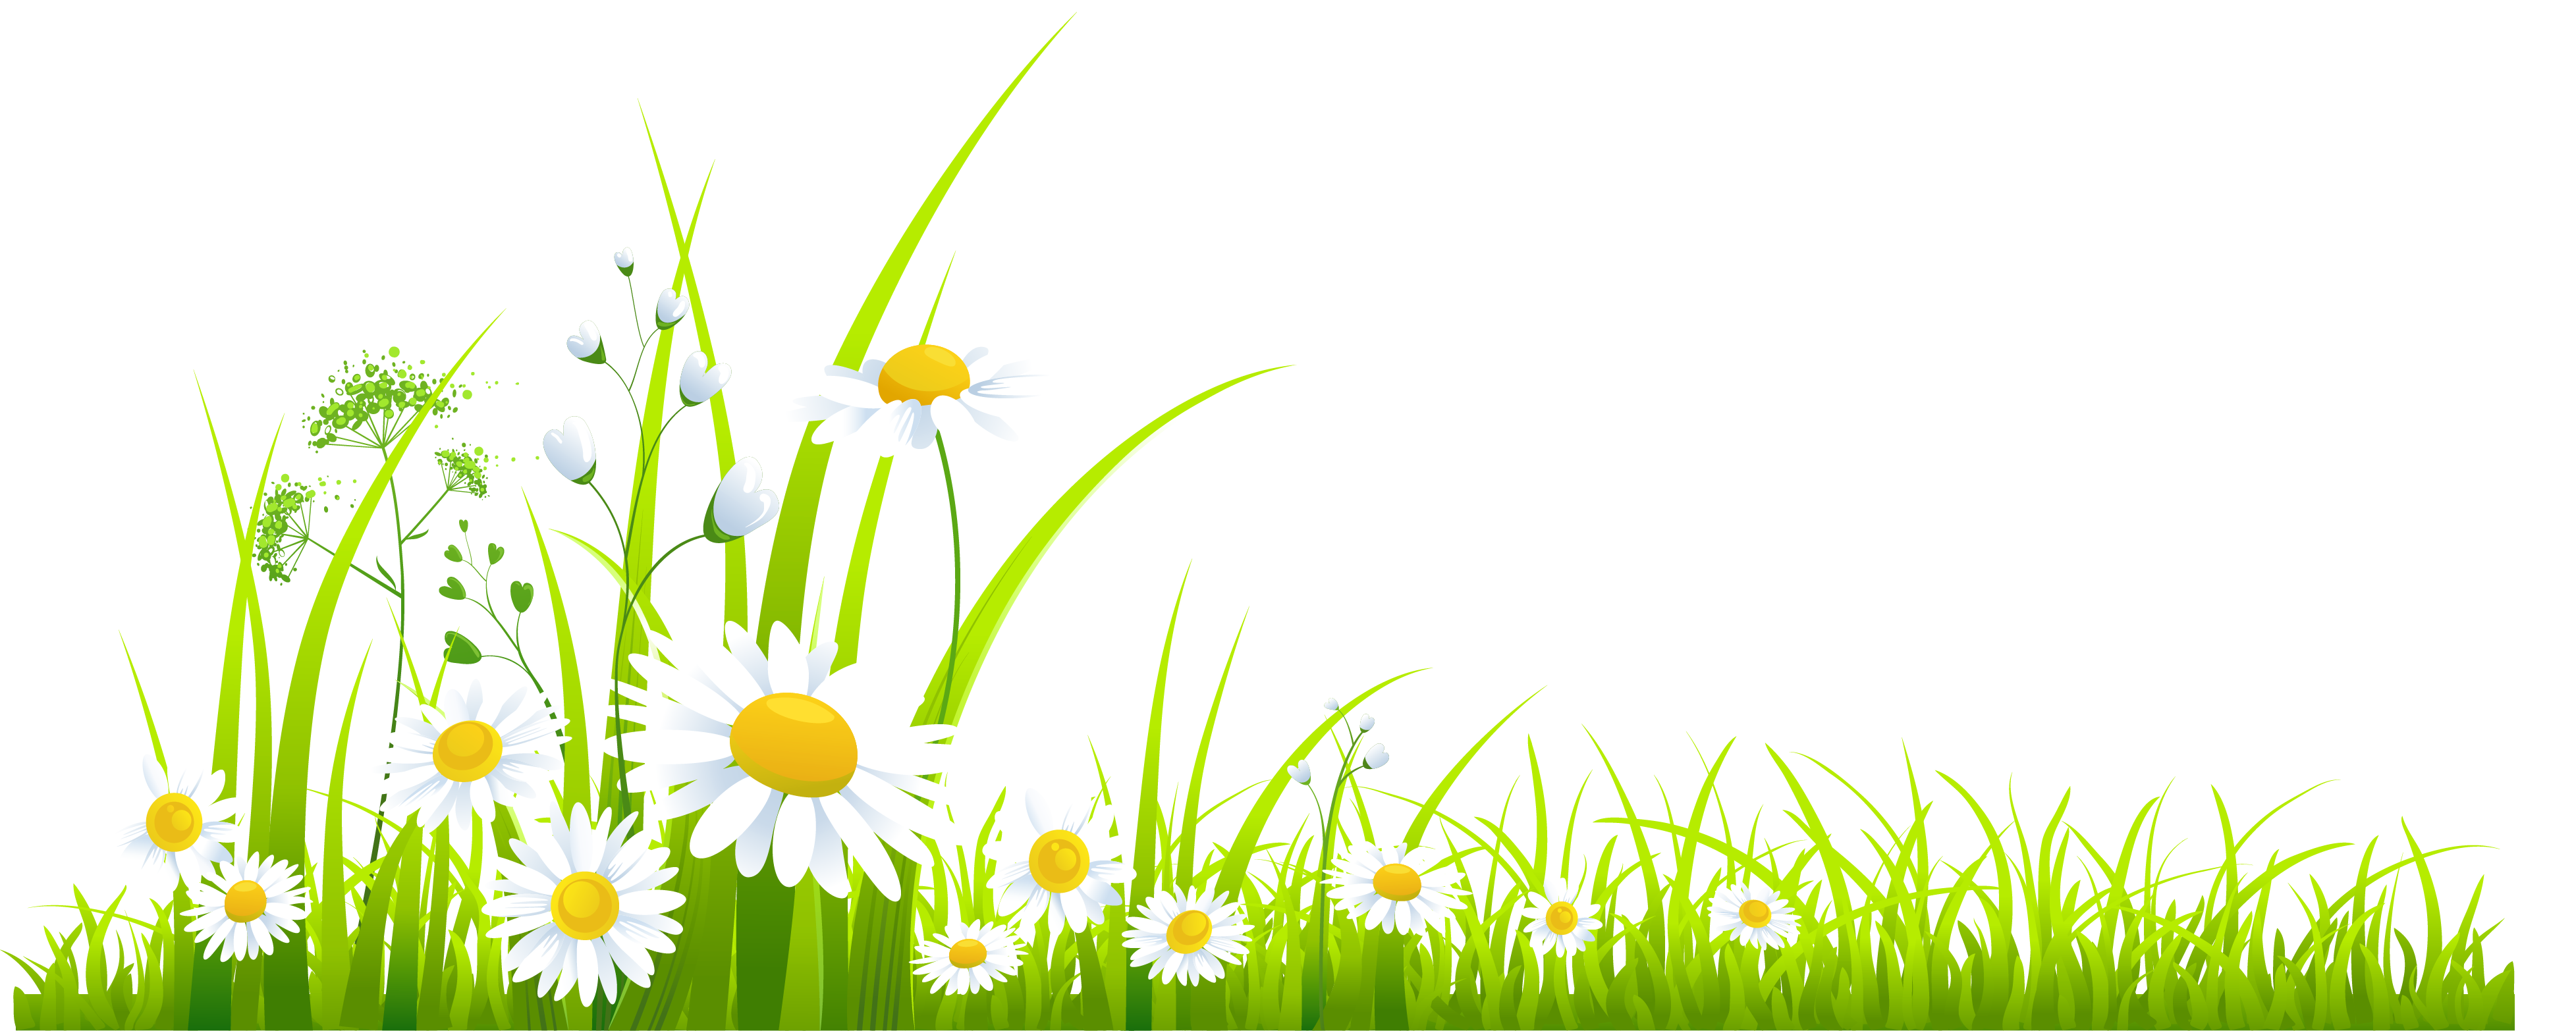 Camomile clipart #4, Download drawings